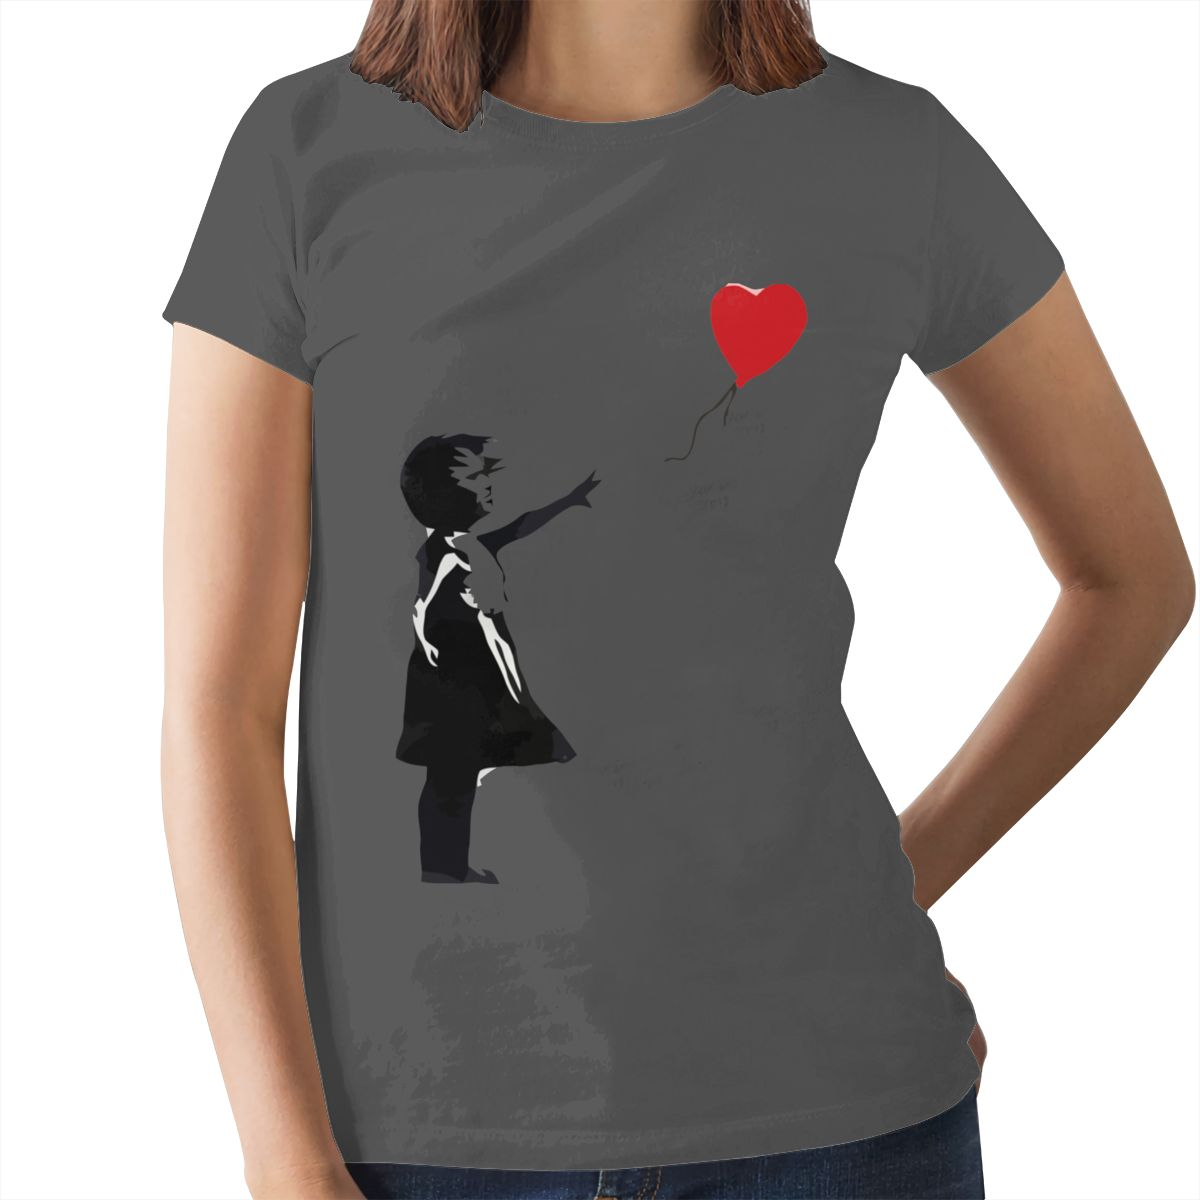 Heart Love T-Shirt Banksy Girl With Balloon T Shirt Trendy Purple Women tshirt Cotton Graphic Ladies Tee Shirt 13